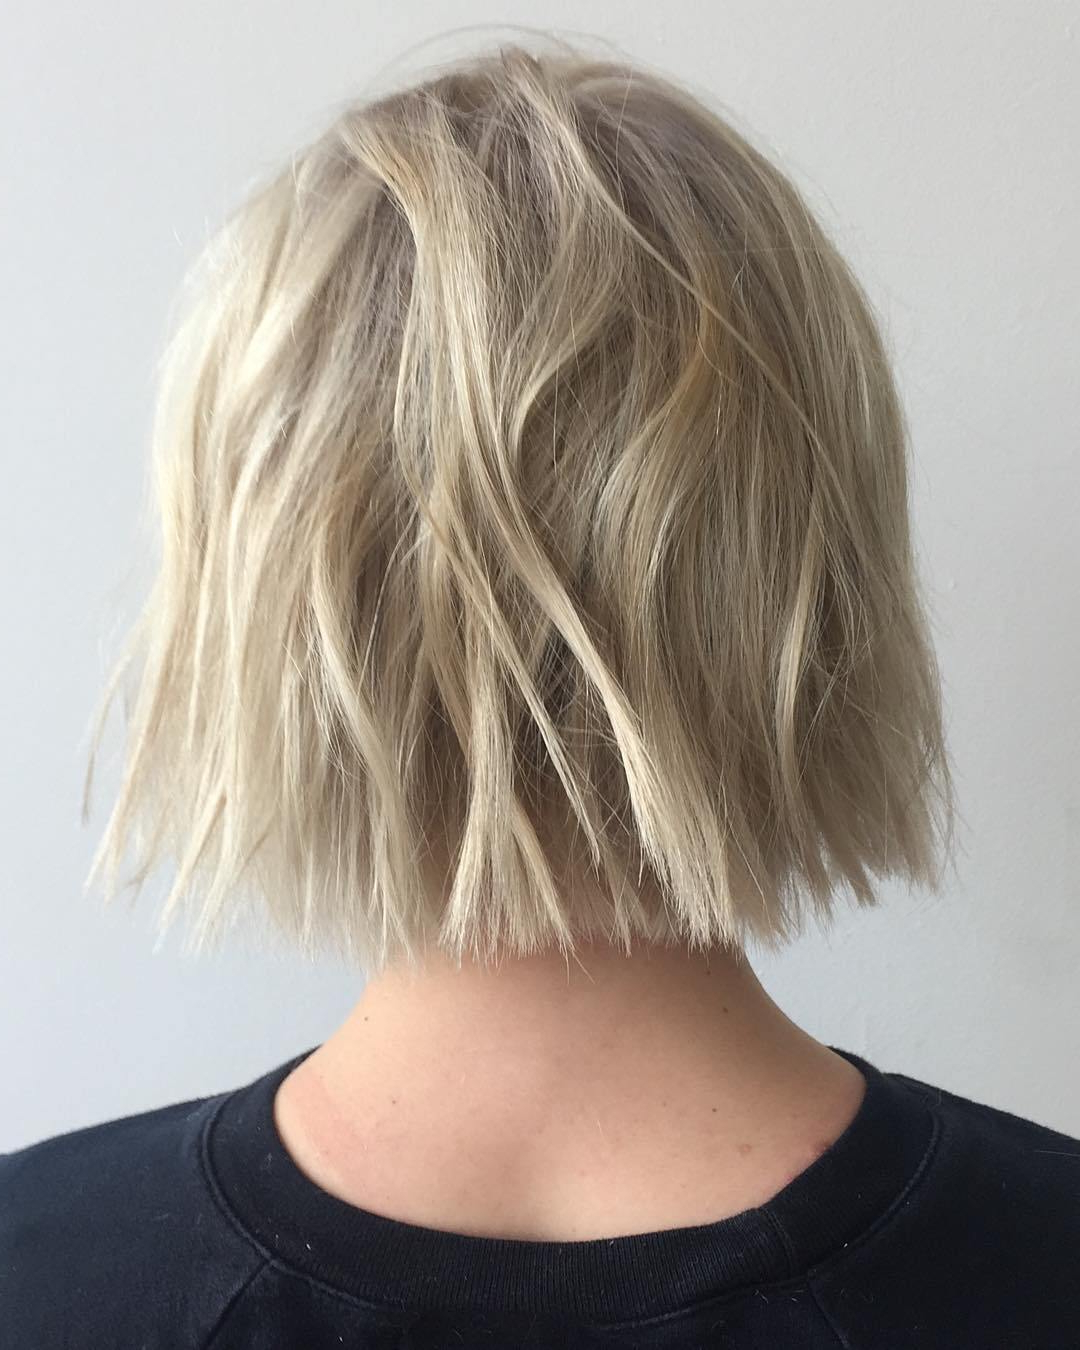 50 Choppy Bobs Too Damn Good Not To Copy – Hair Adviser Within Most Recent Blonde Lob Hairstyles With Disconnected Jagged Layers (View 3 of 20)